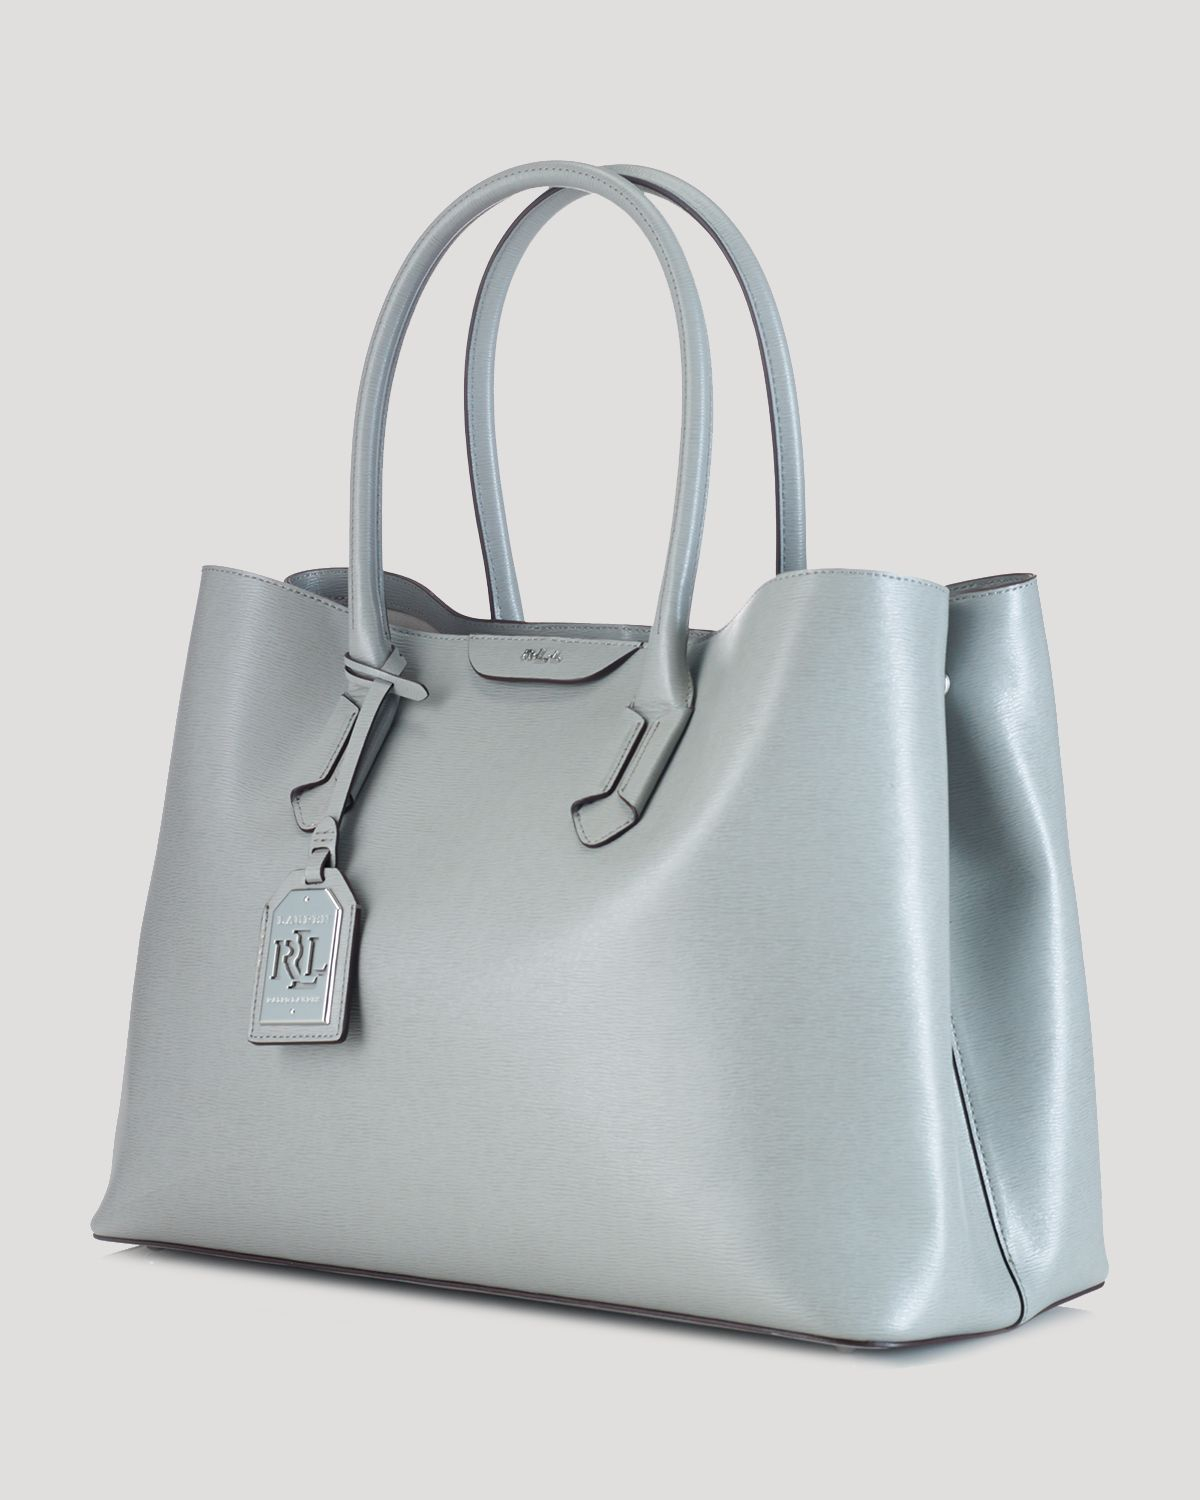 bb8259829258 Lyst - Ralph Lauren Lauren Tote - Tate City in Gray